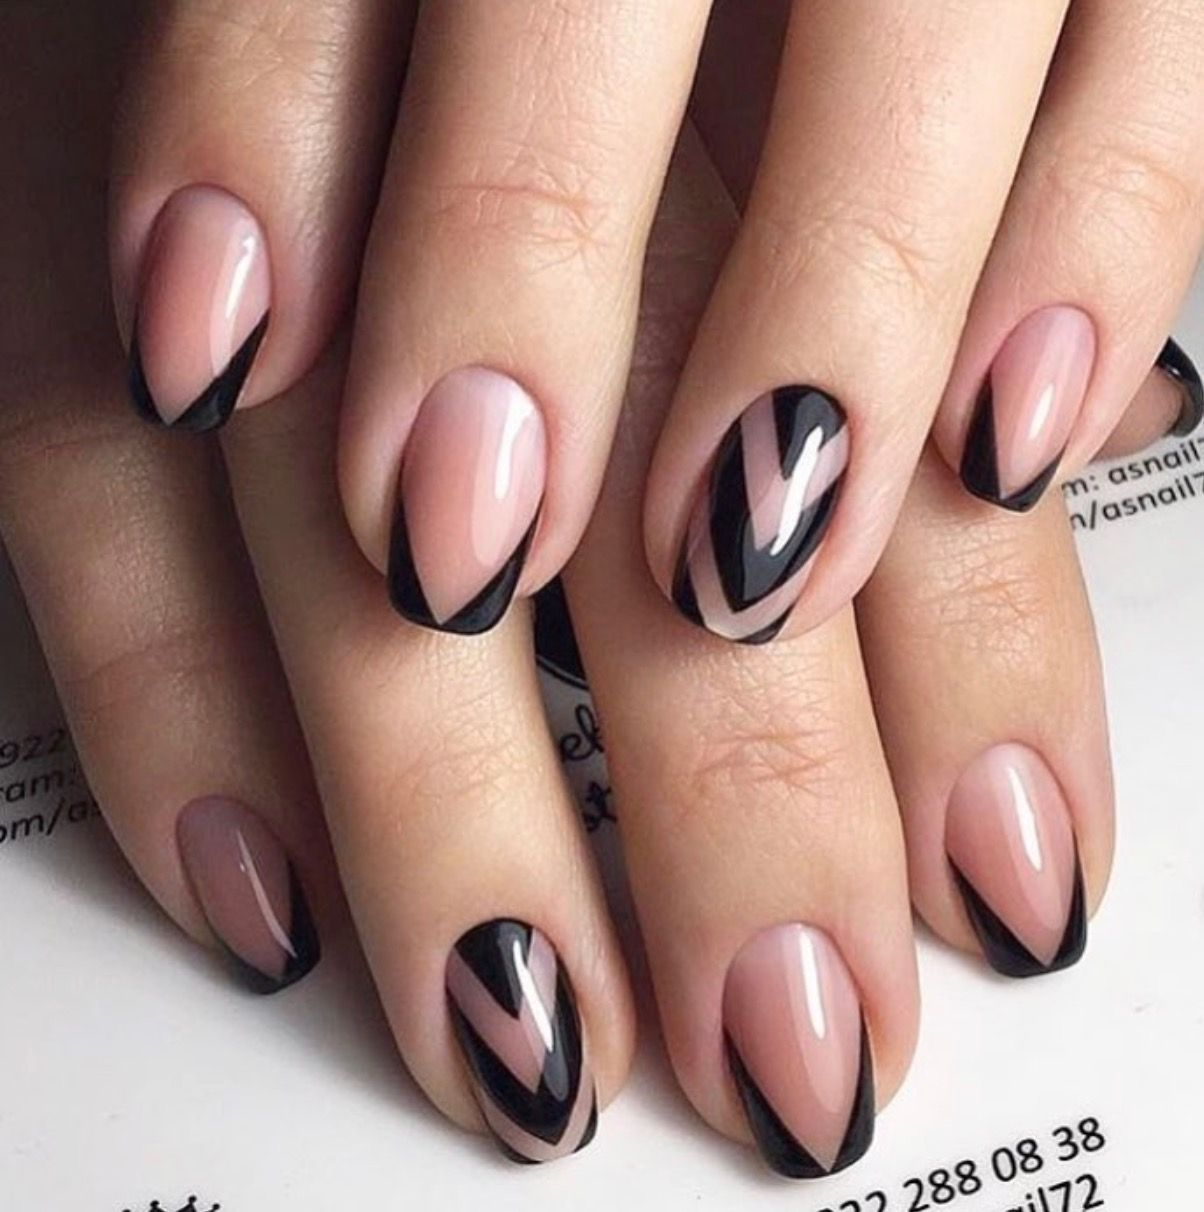 Pin by Erica Beams on Nails | Pinterest